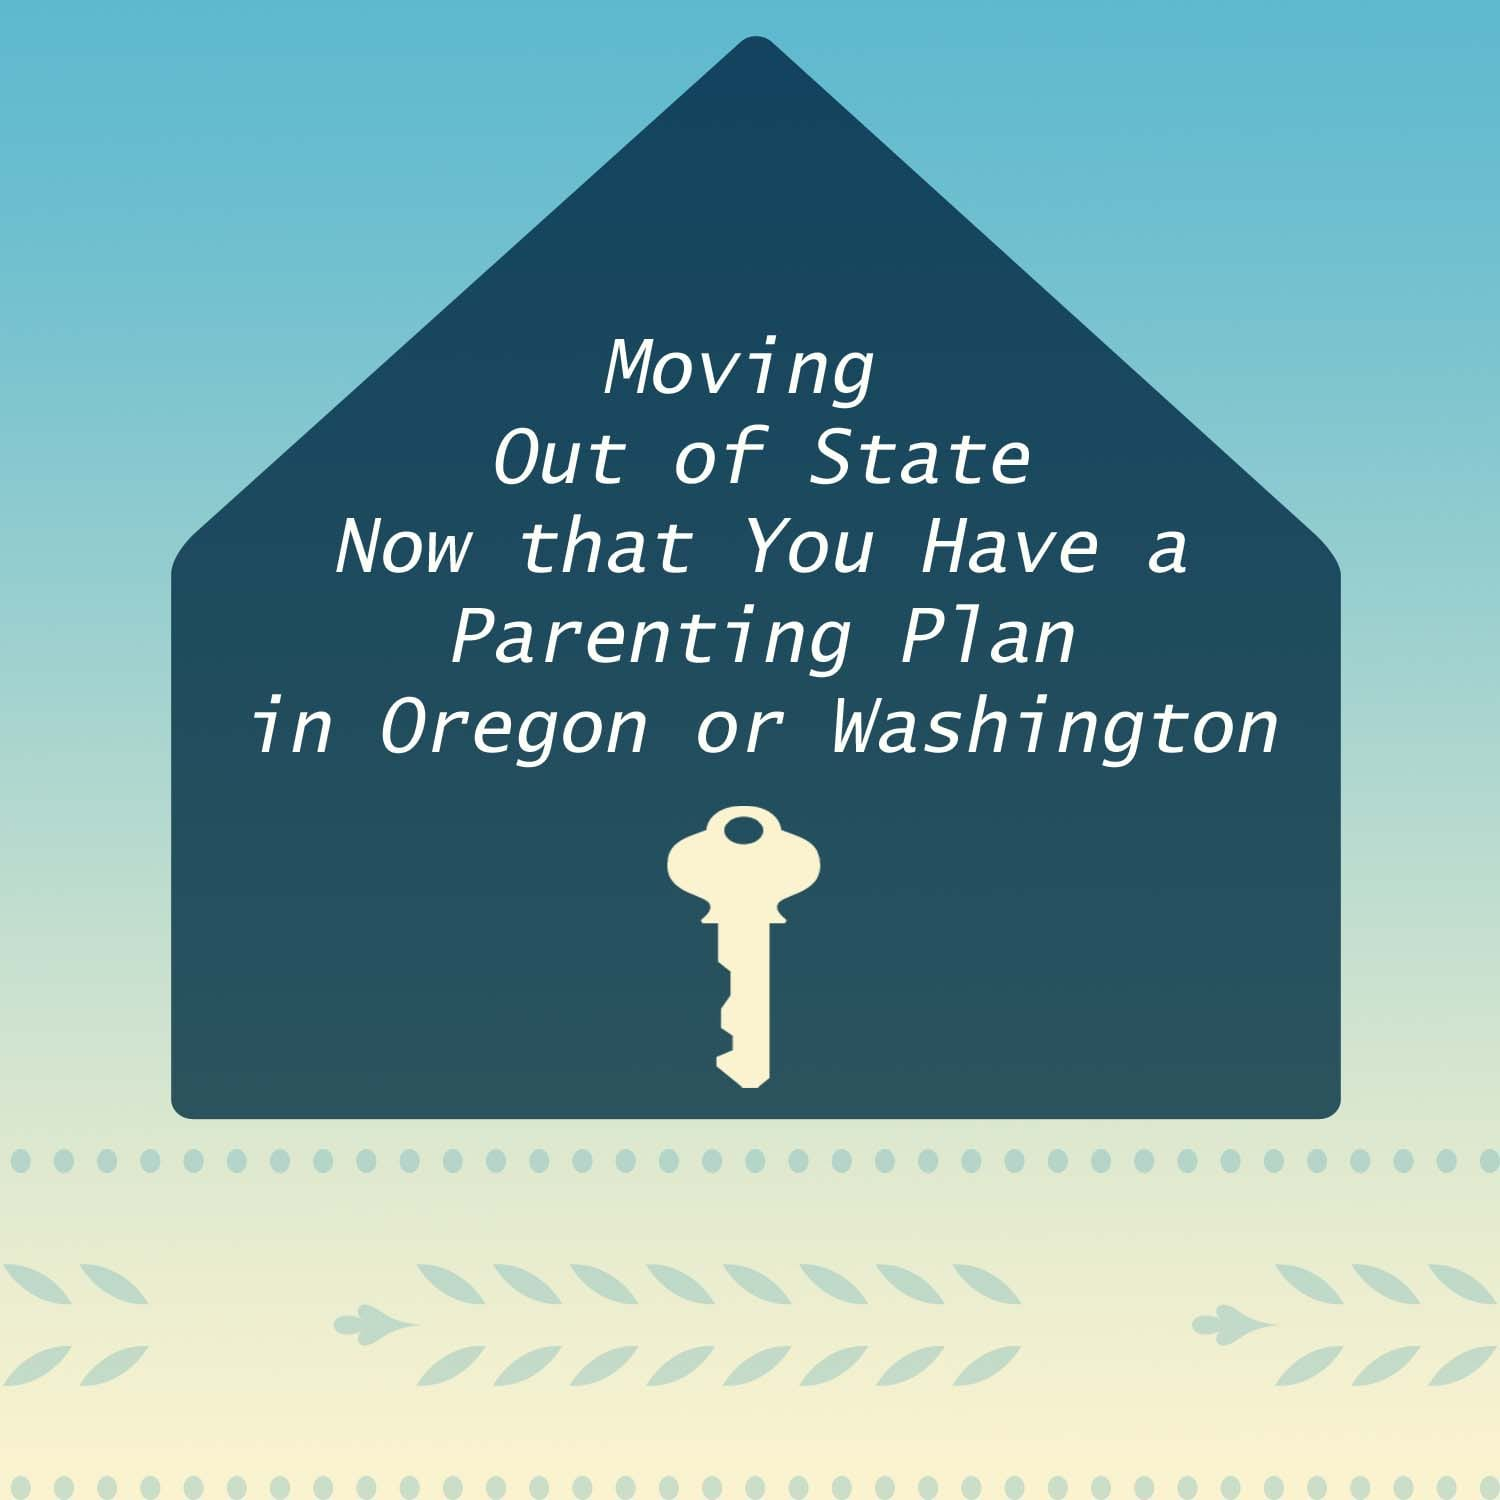 Moving Out Of State With A Parenting Plan In Oregon Or